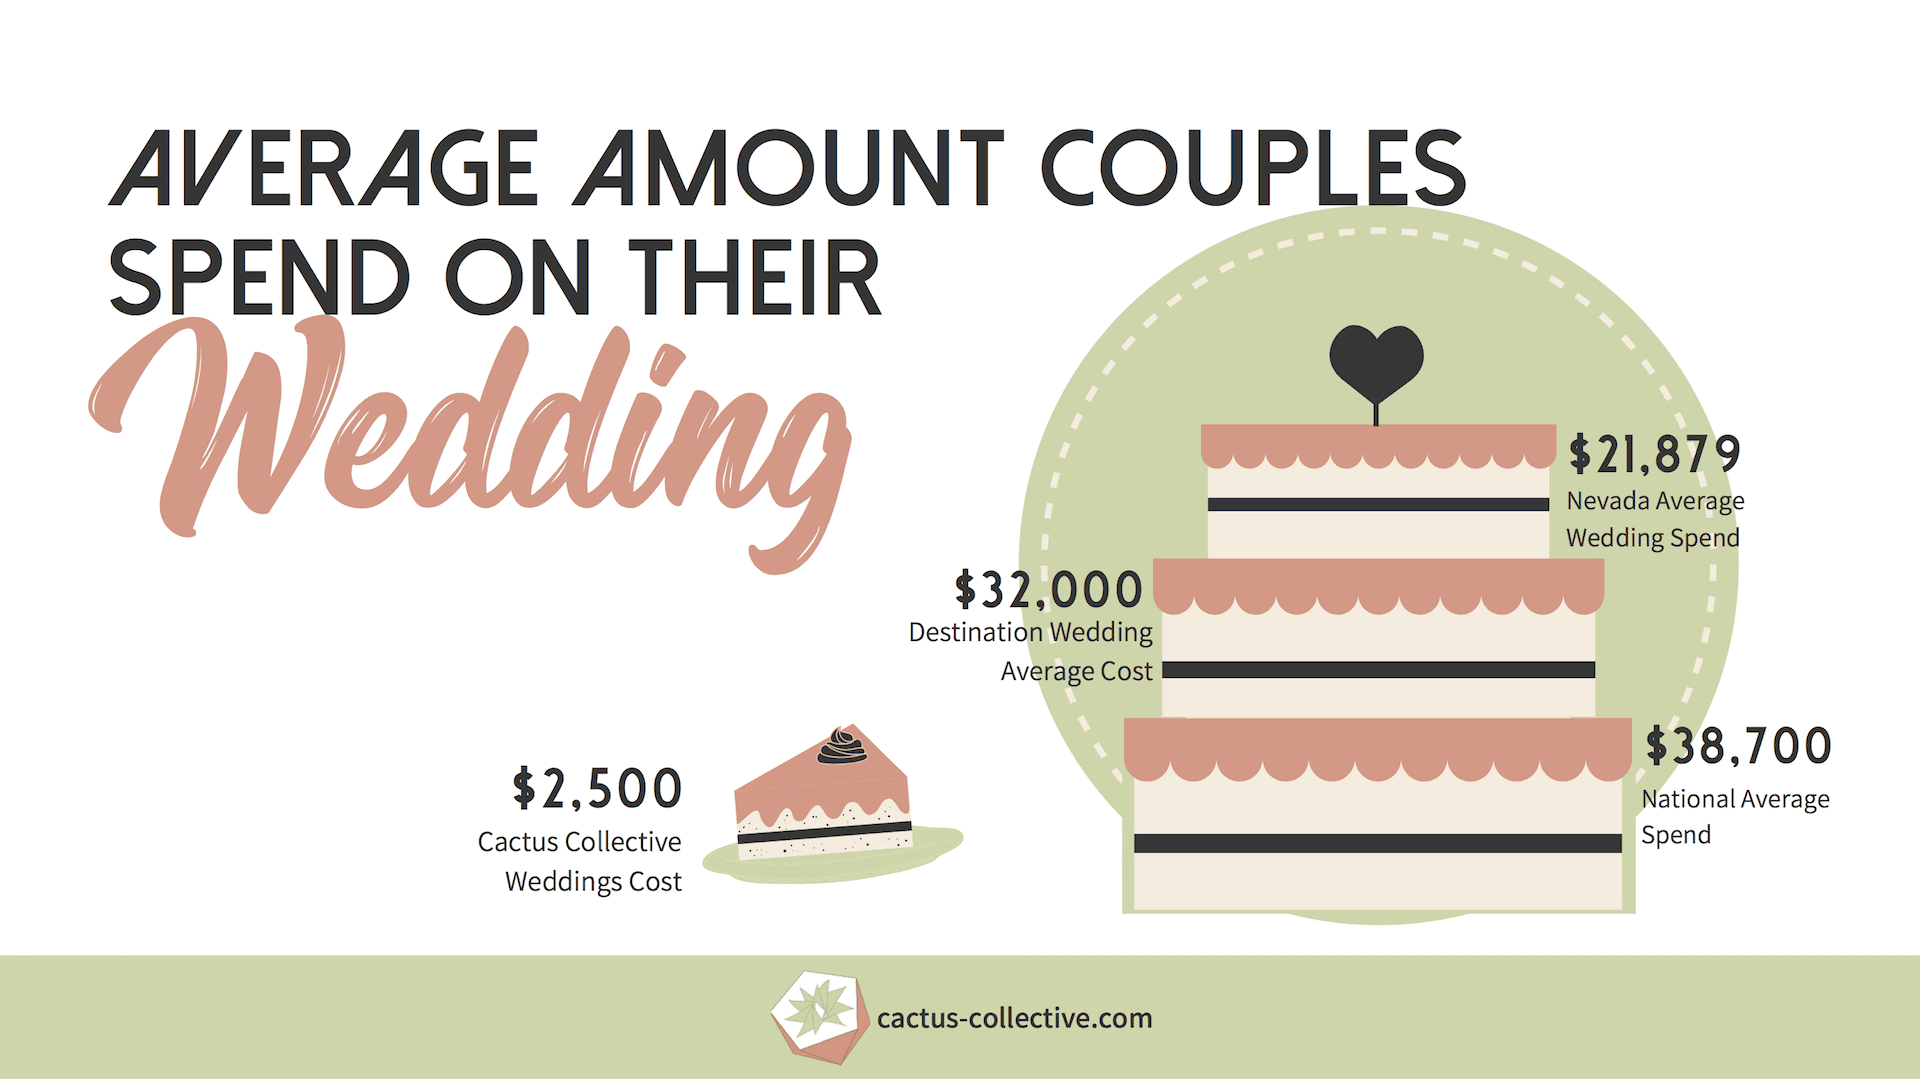 Average amount couples spend on their wedding.